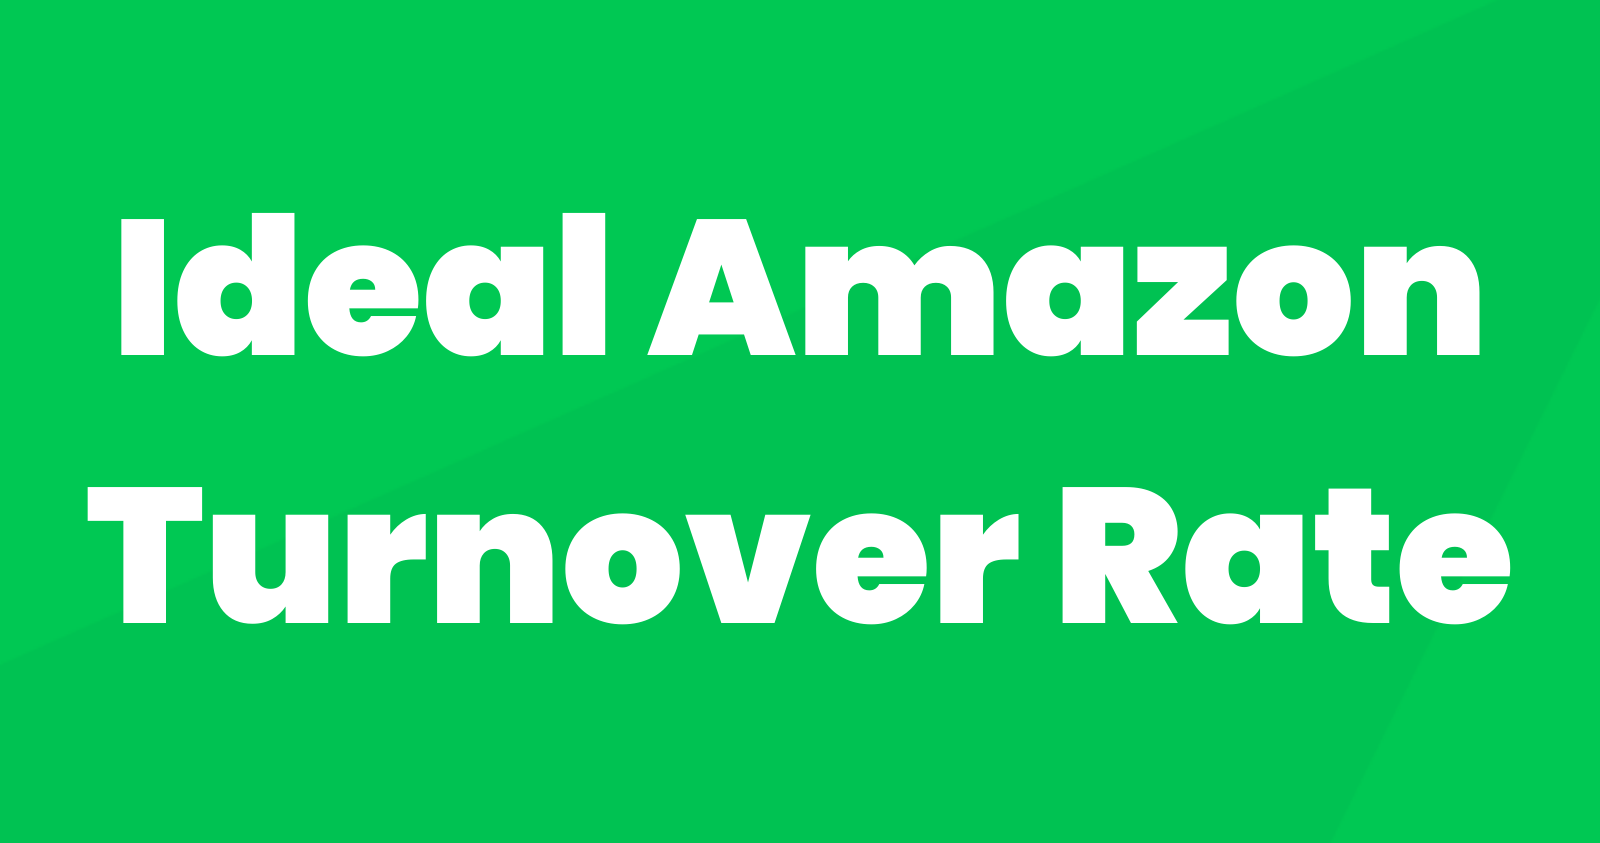 What's the Ideal Amazon Turnover Rate?